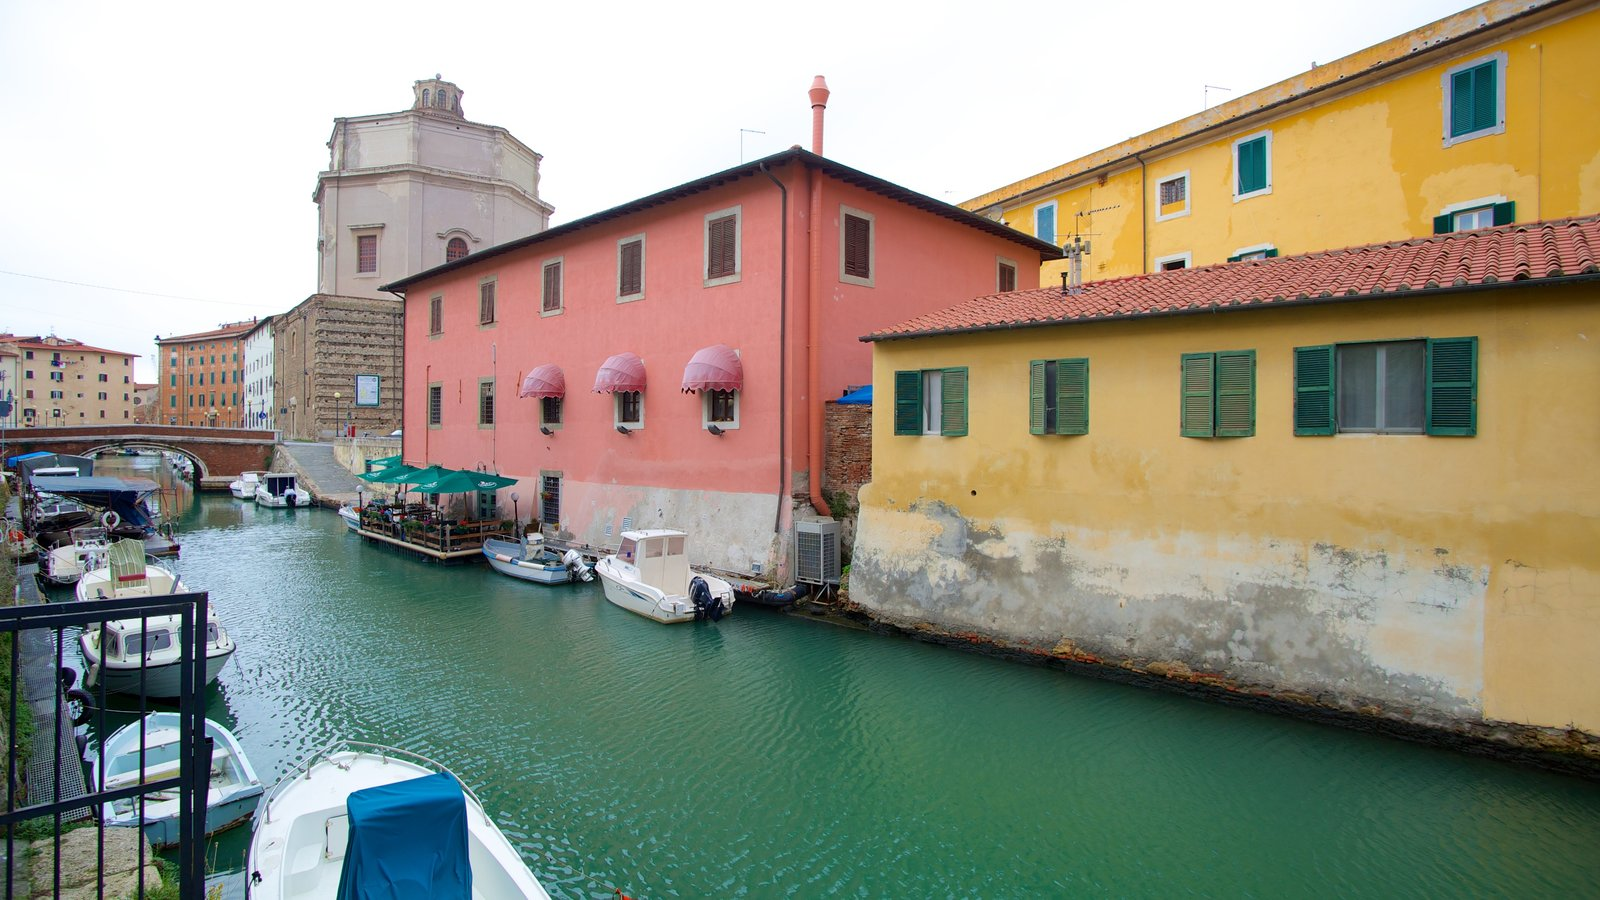 Chiesa di Santa Caterina which includes boating and a river or creek